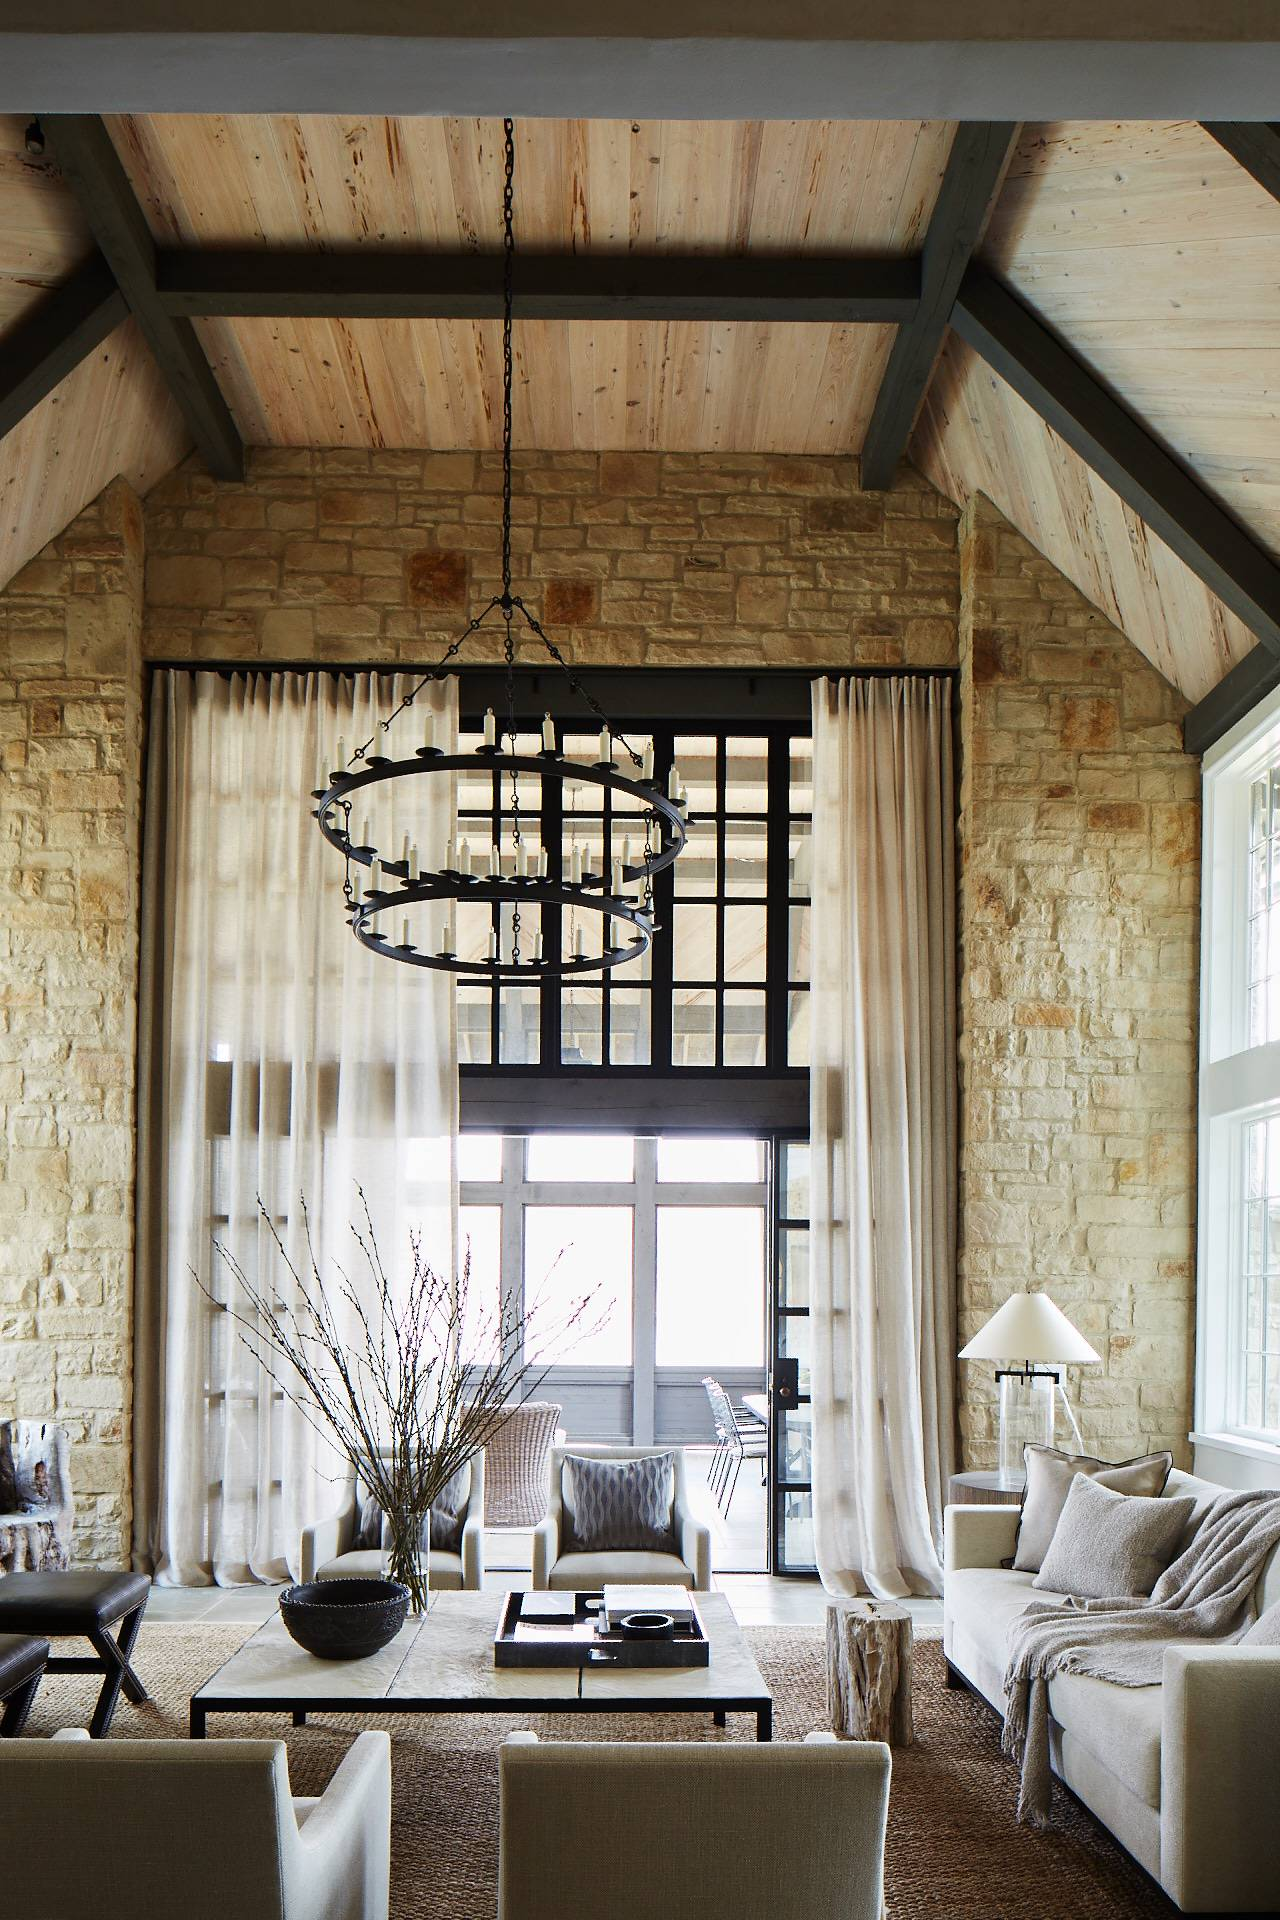 Stunning rustic luxe design in a living room with stone walls, ring style chandeliers, and wood plank ceilings - Jeffrey Dungan.